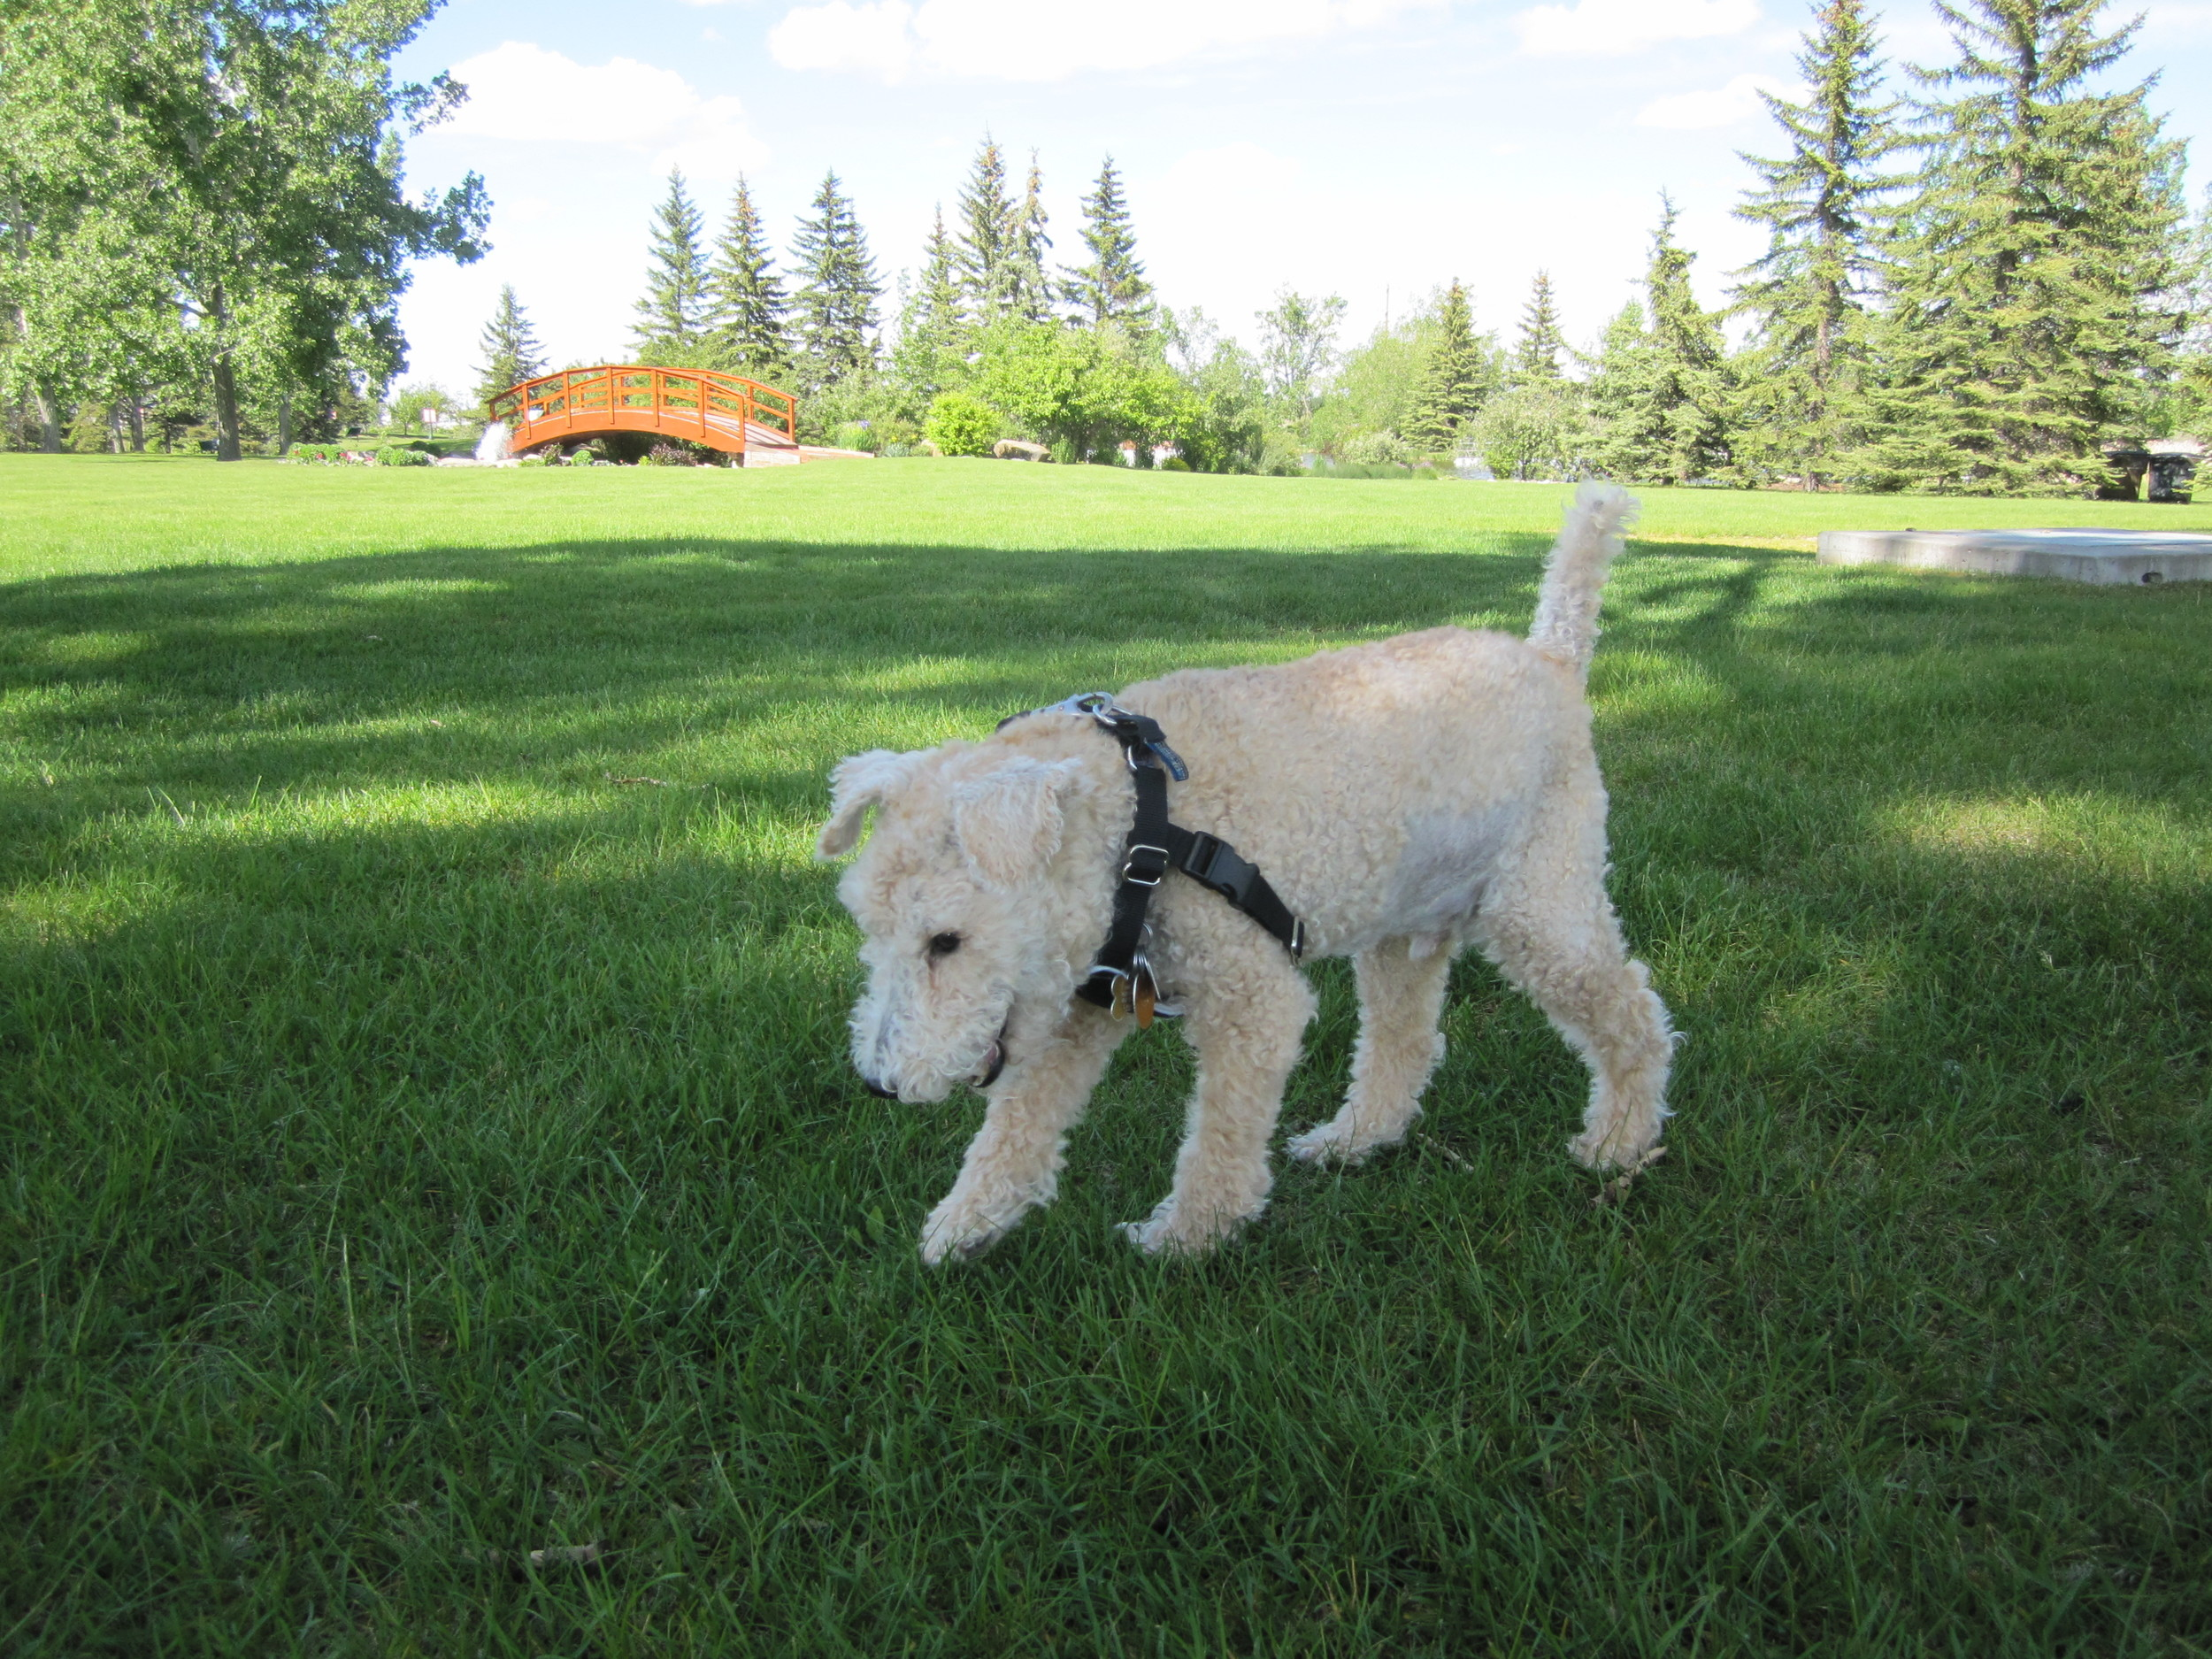 Visiting Spruce Meadows